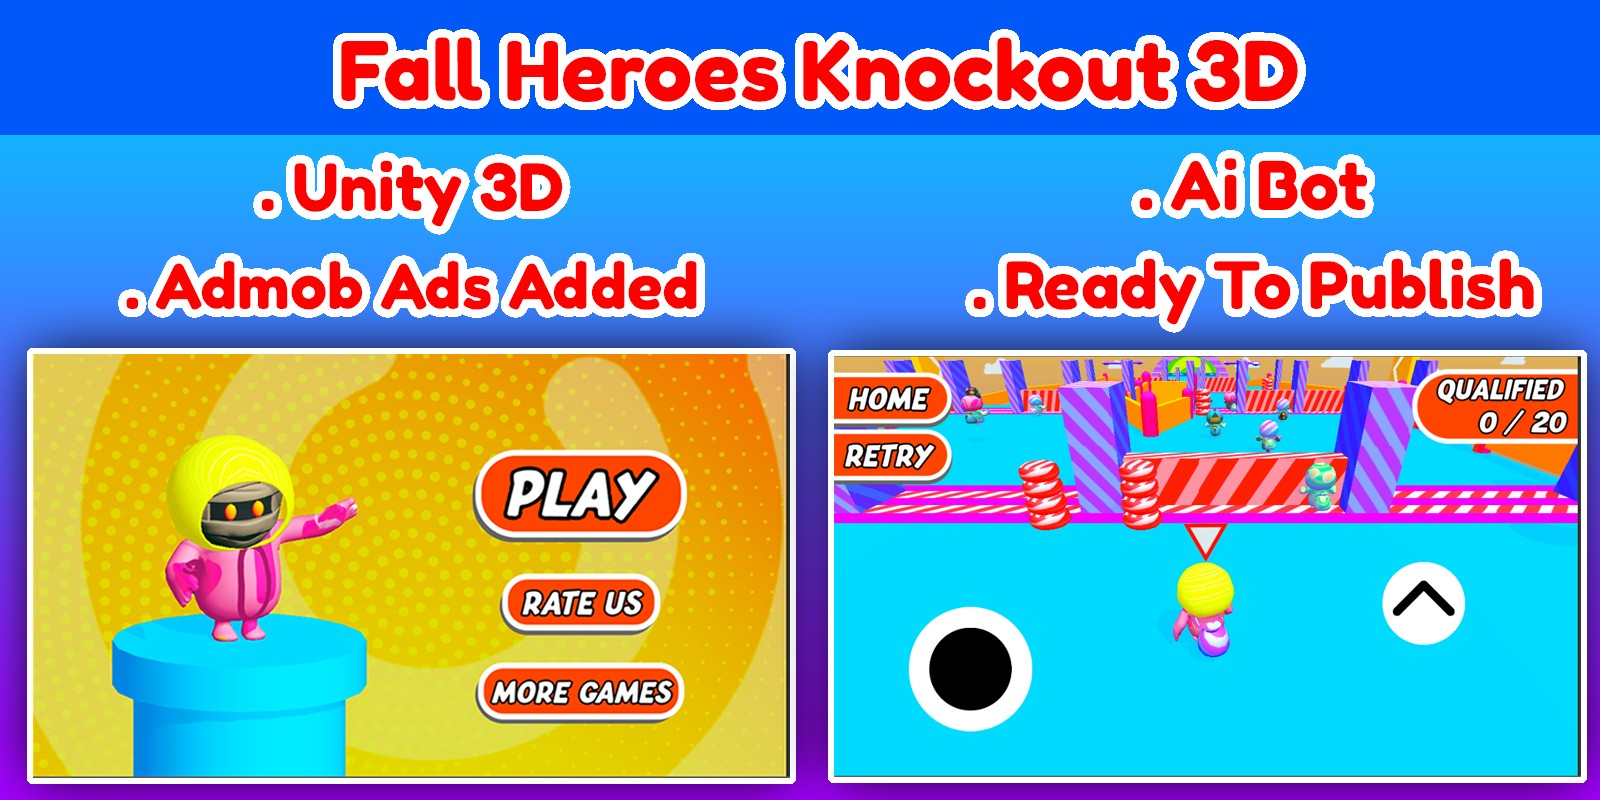 Fall Heroes Knockout 3D Game Unity Source Code